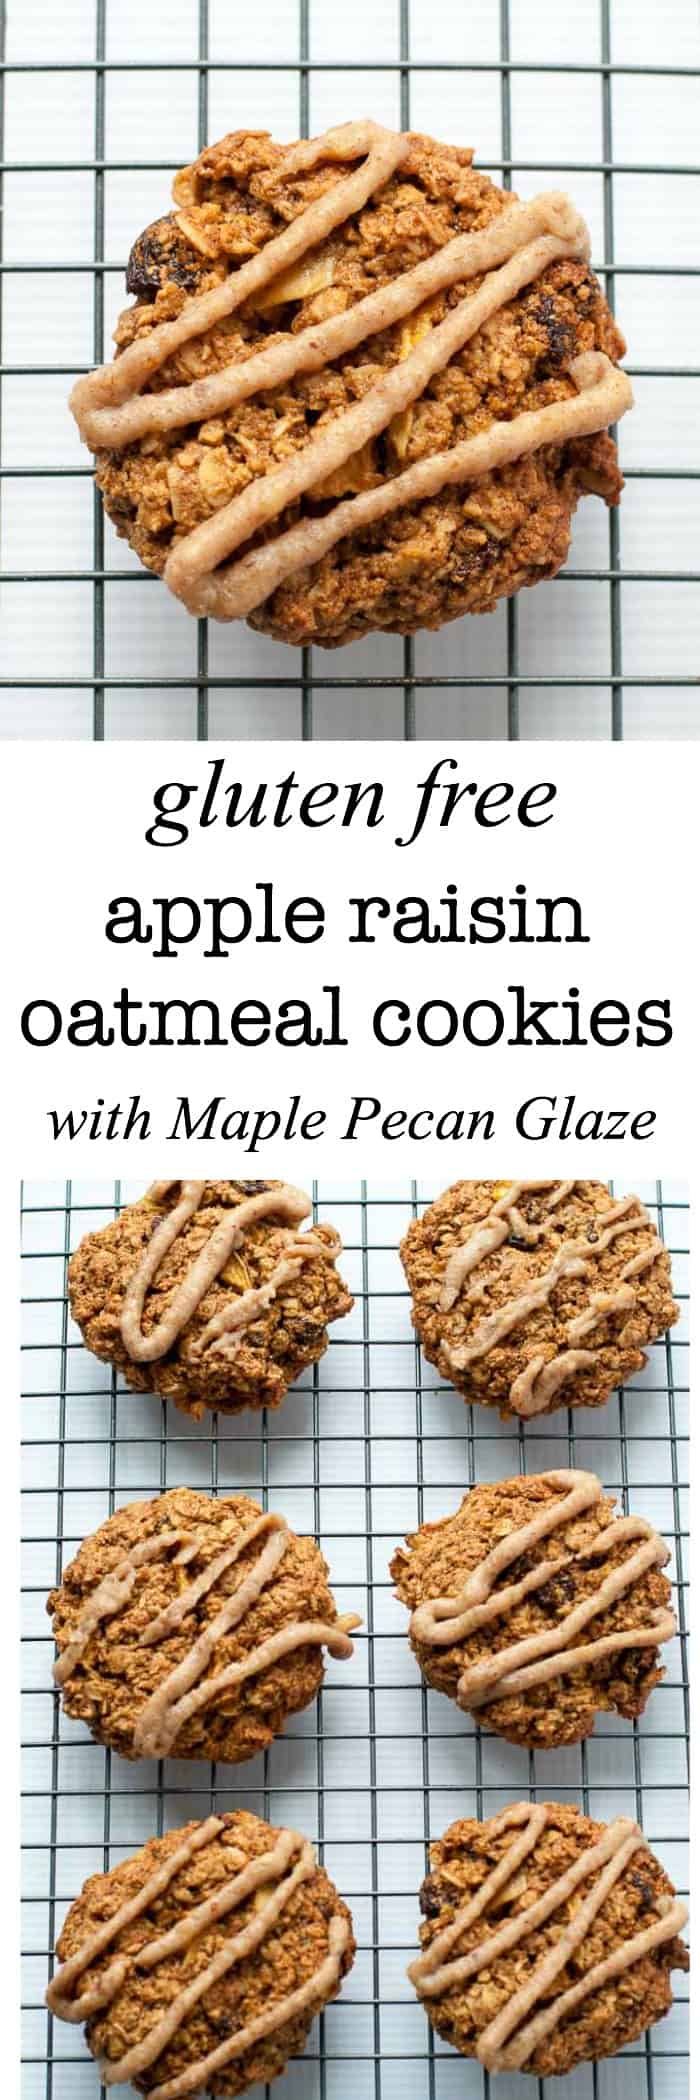 These Gluten Free Apple Raisin Oatmeal Cookies on a cooling rack